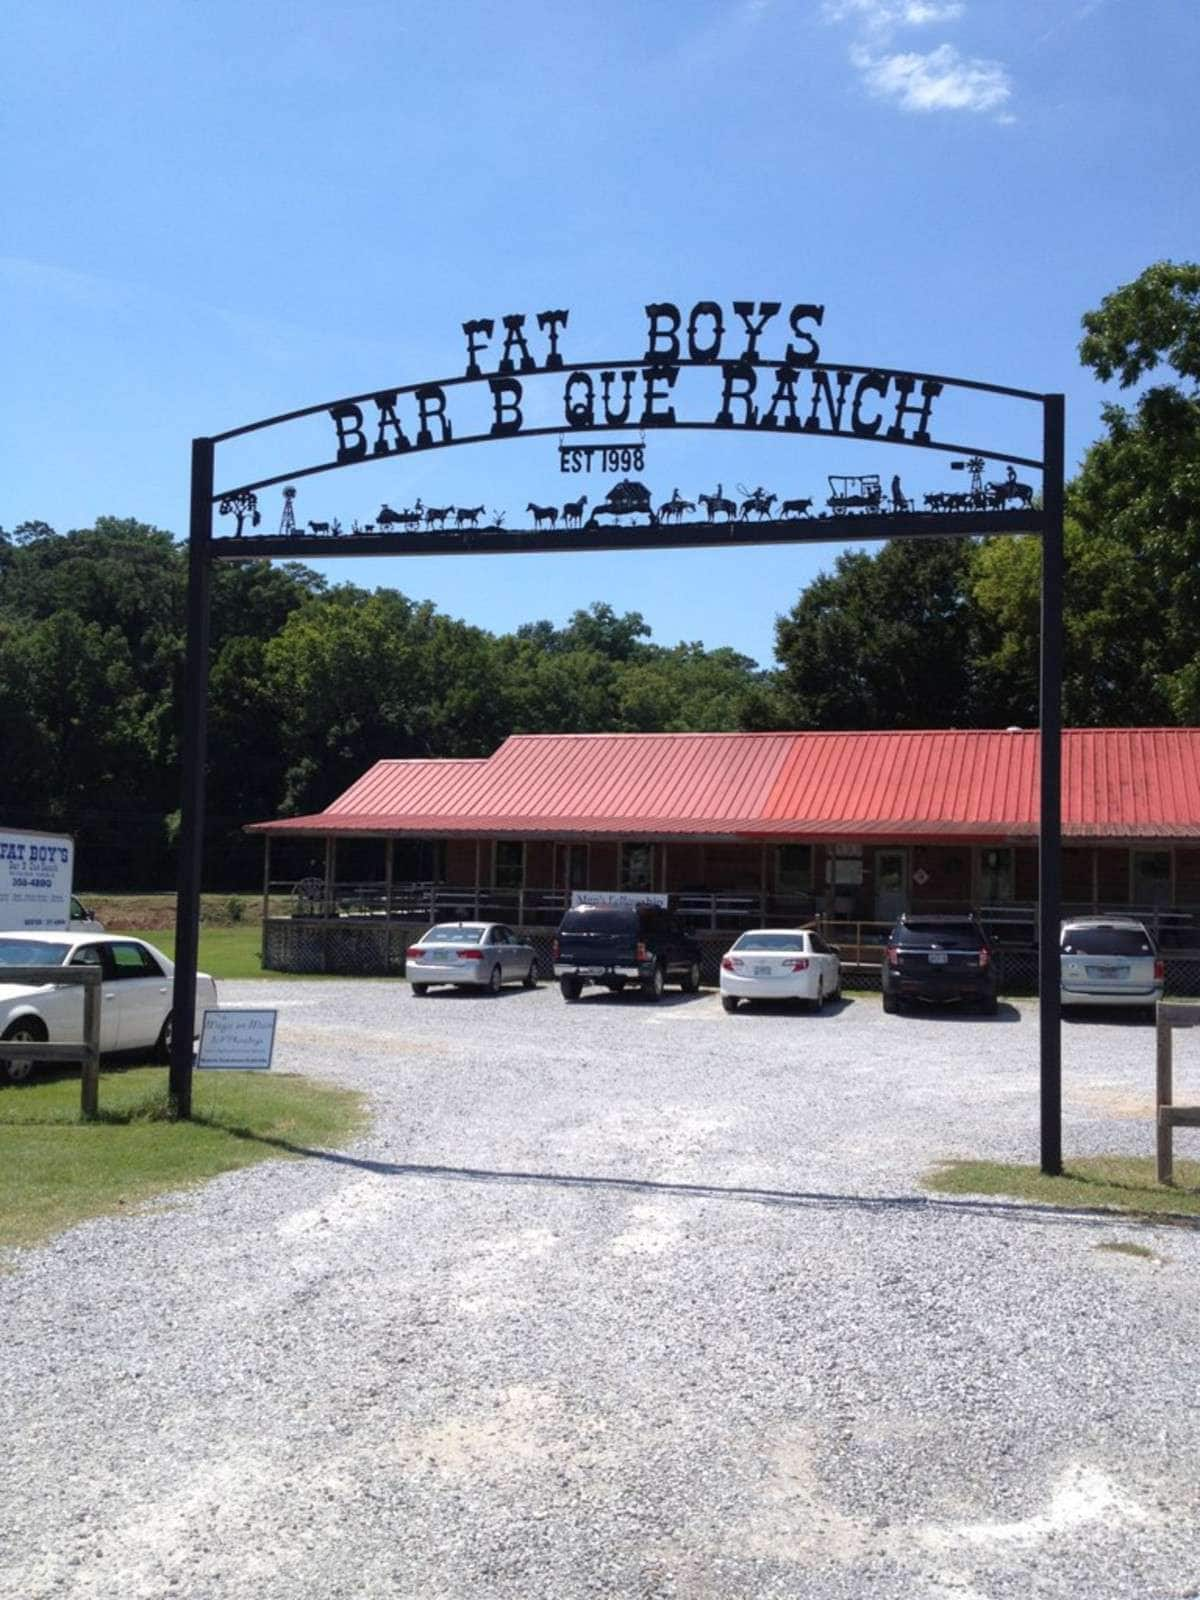 Fat Boys Bar B Que Ranch